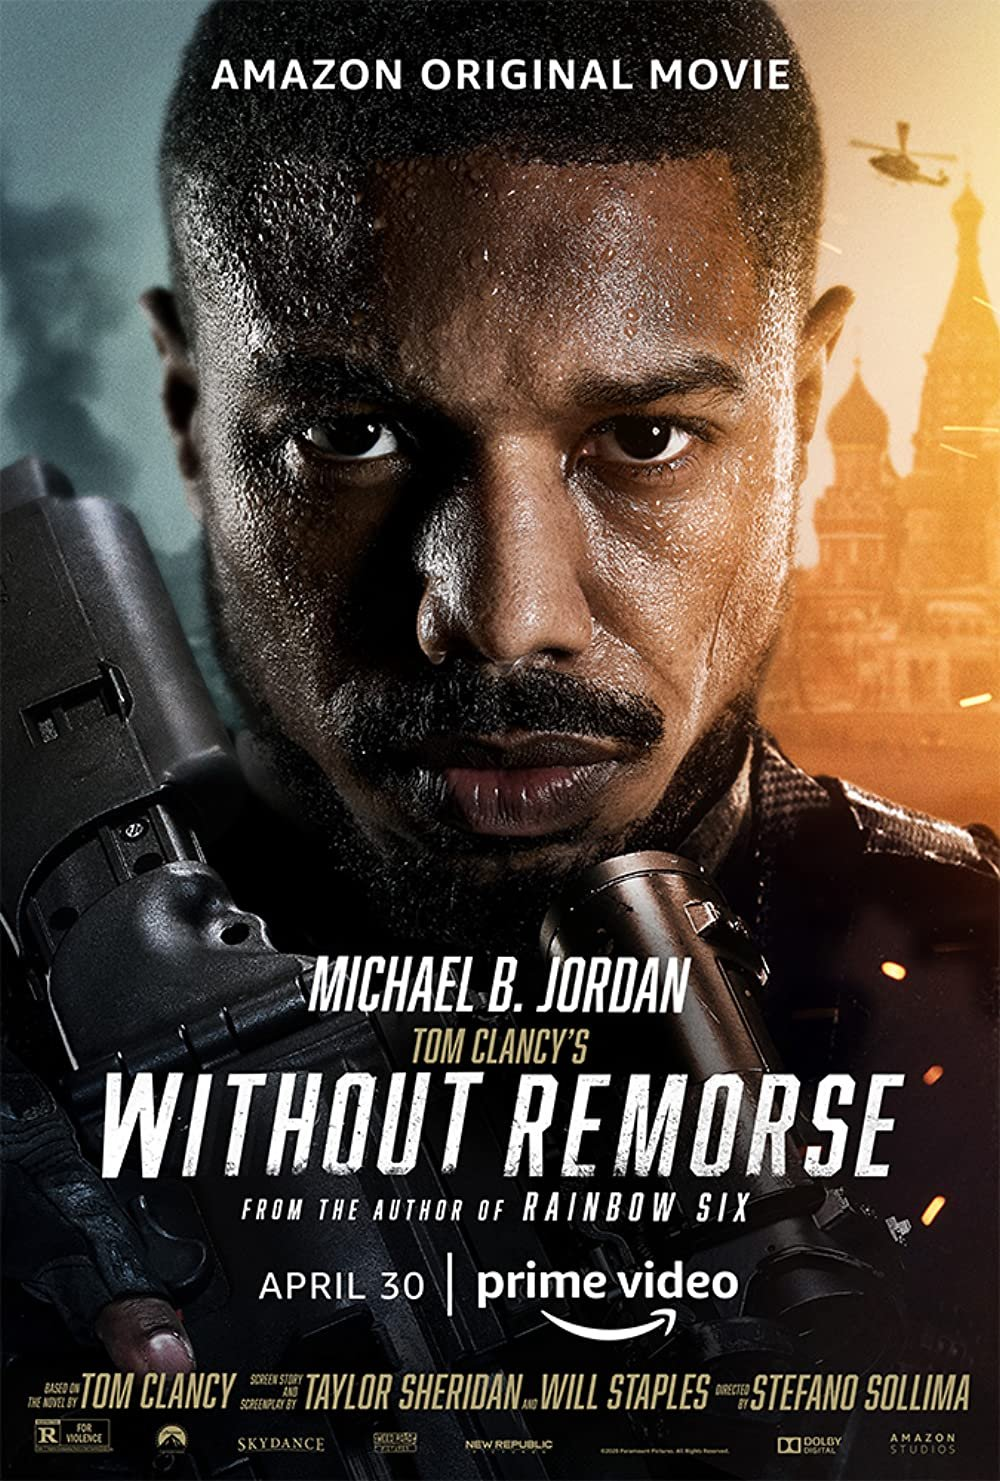 Without Remorse poster image